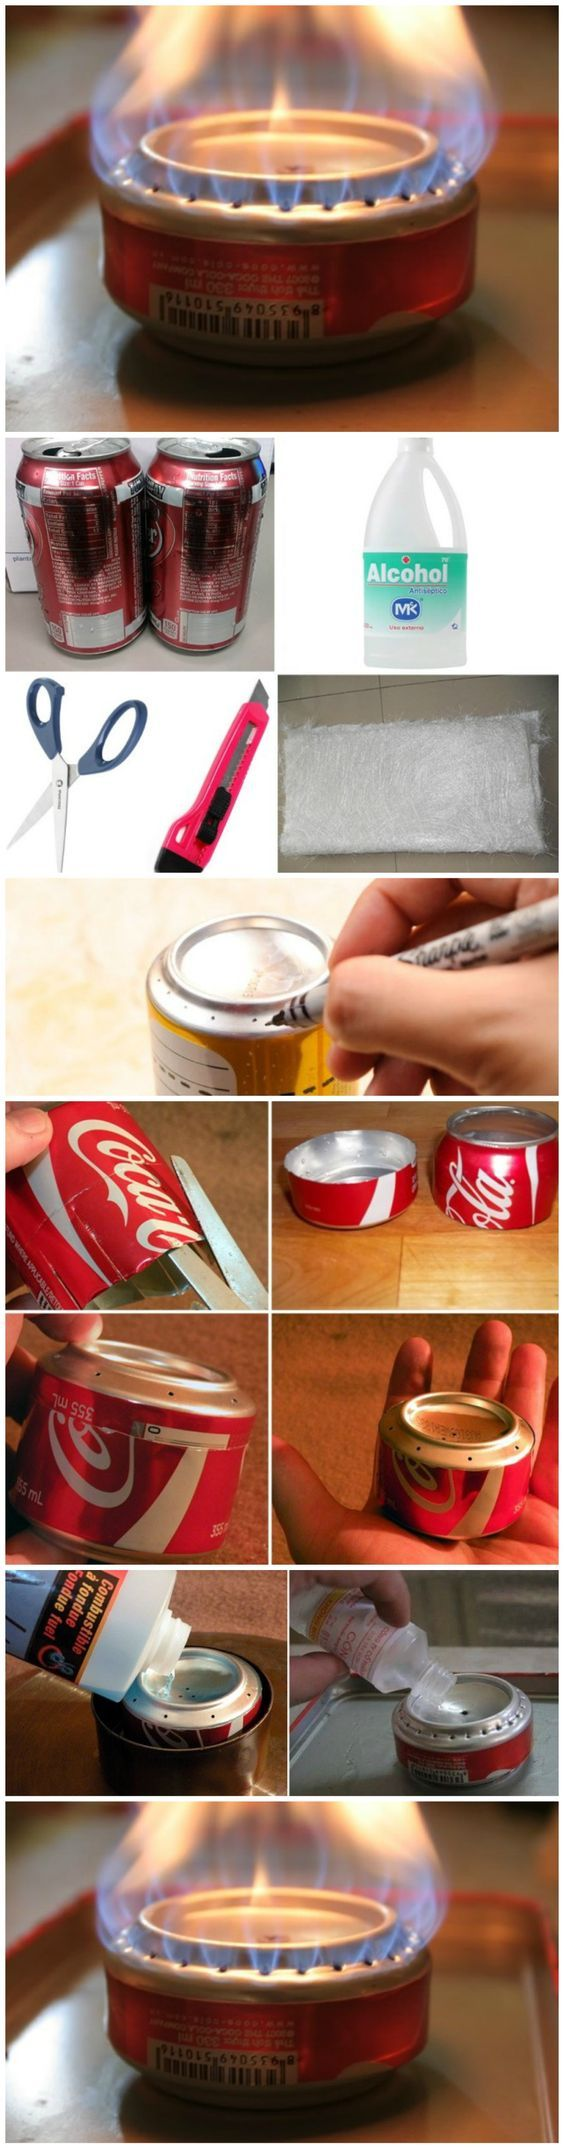 How To Build a Coke Can Stove for Hiking and Camping: